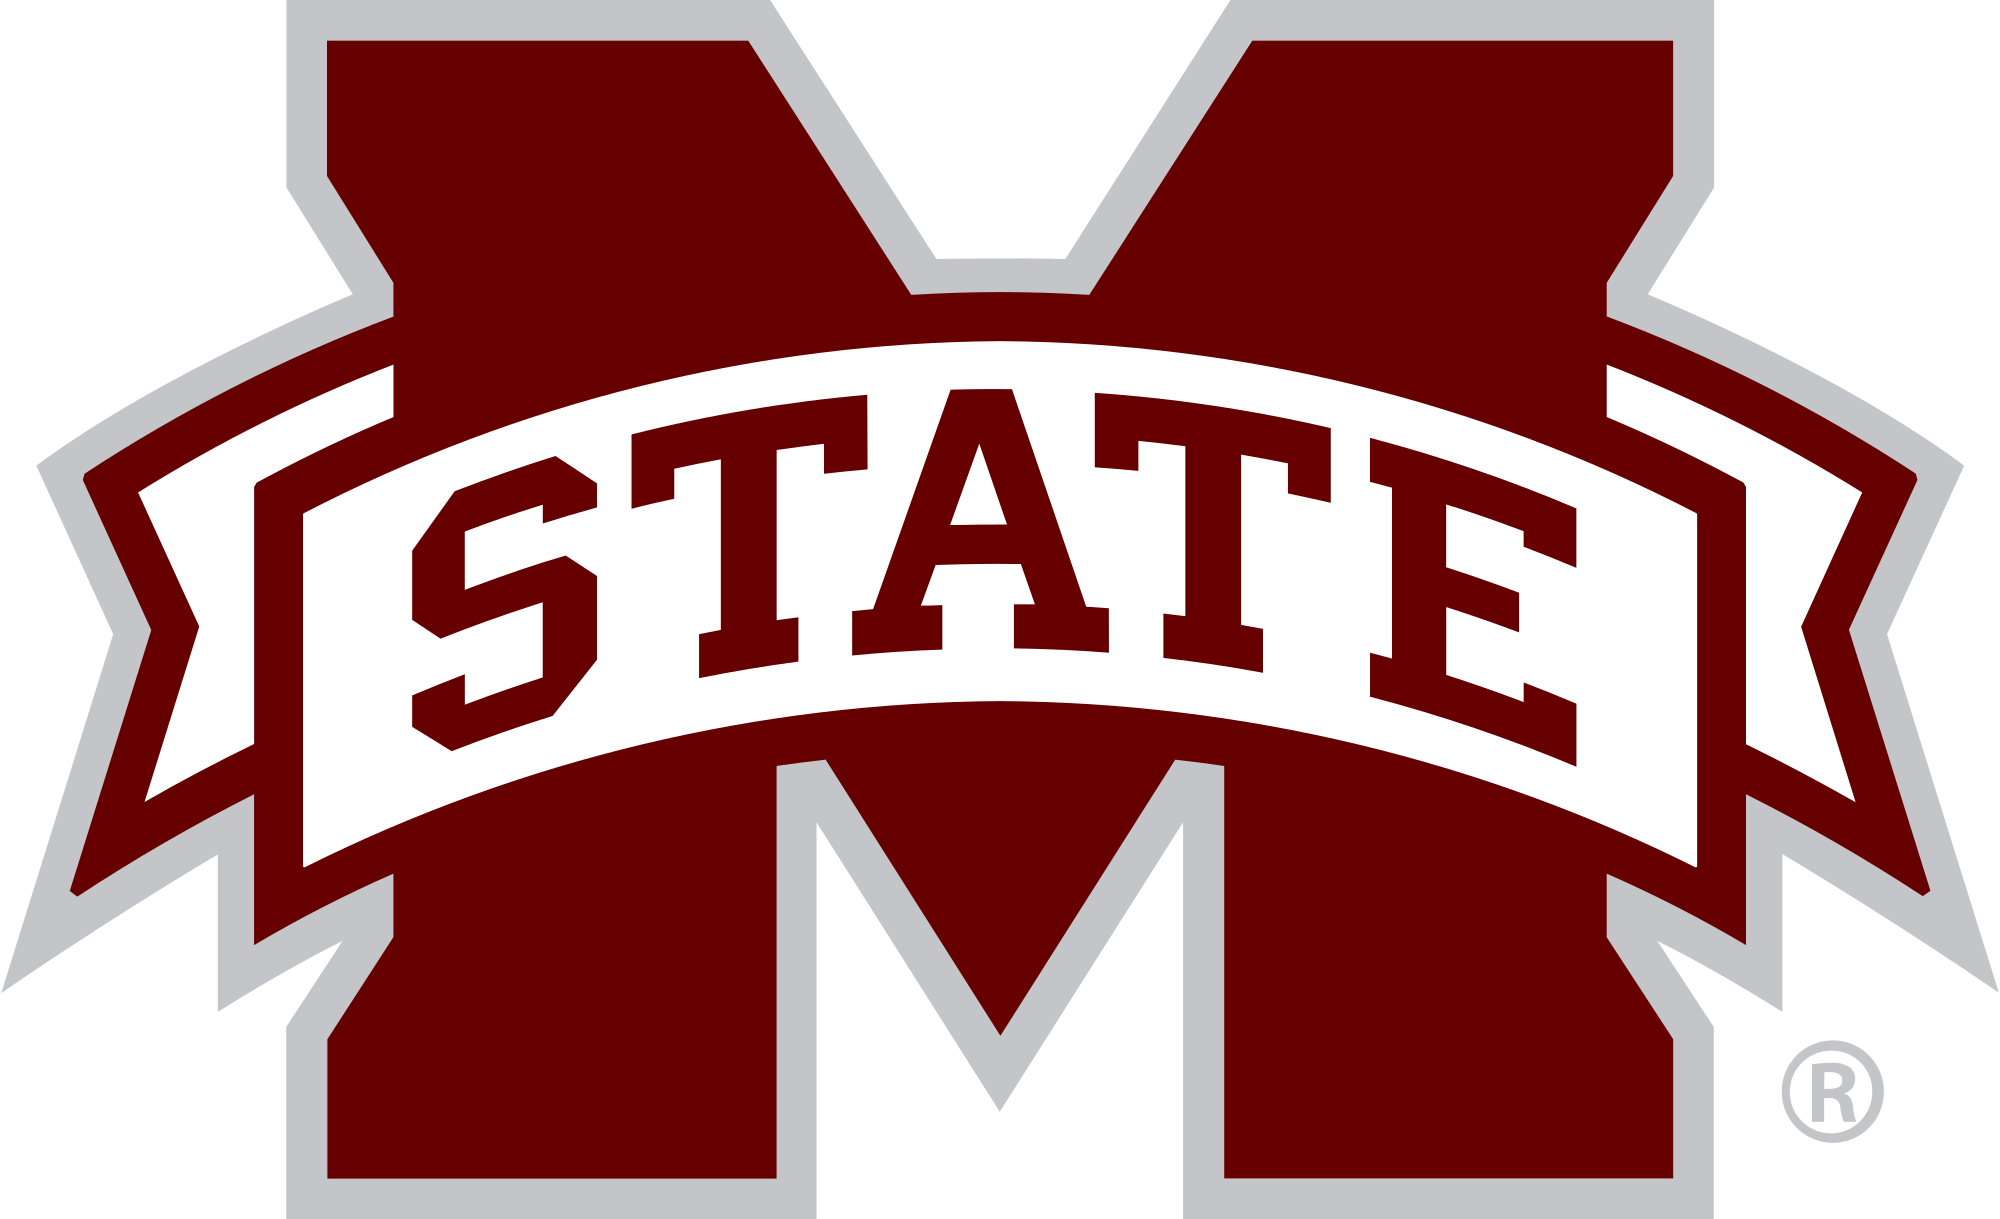 Mississippi state university logo clipart graphic royalty free download File:Mississippi State Bulldogs.svg - Wikimedia Commons graphic royalty free download